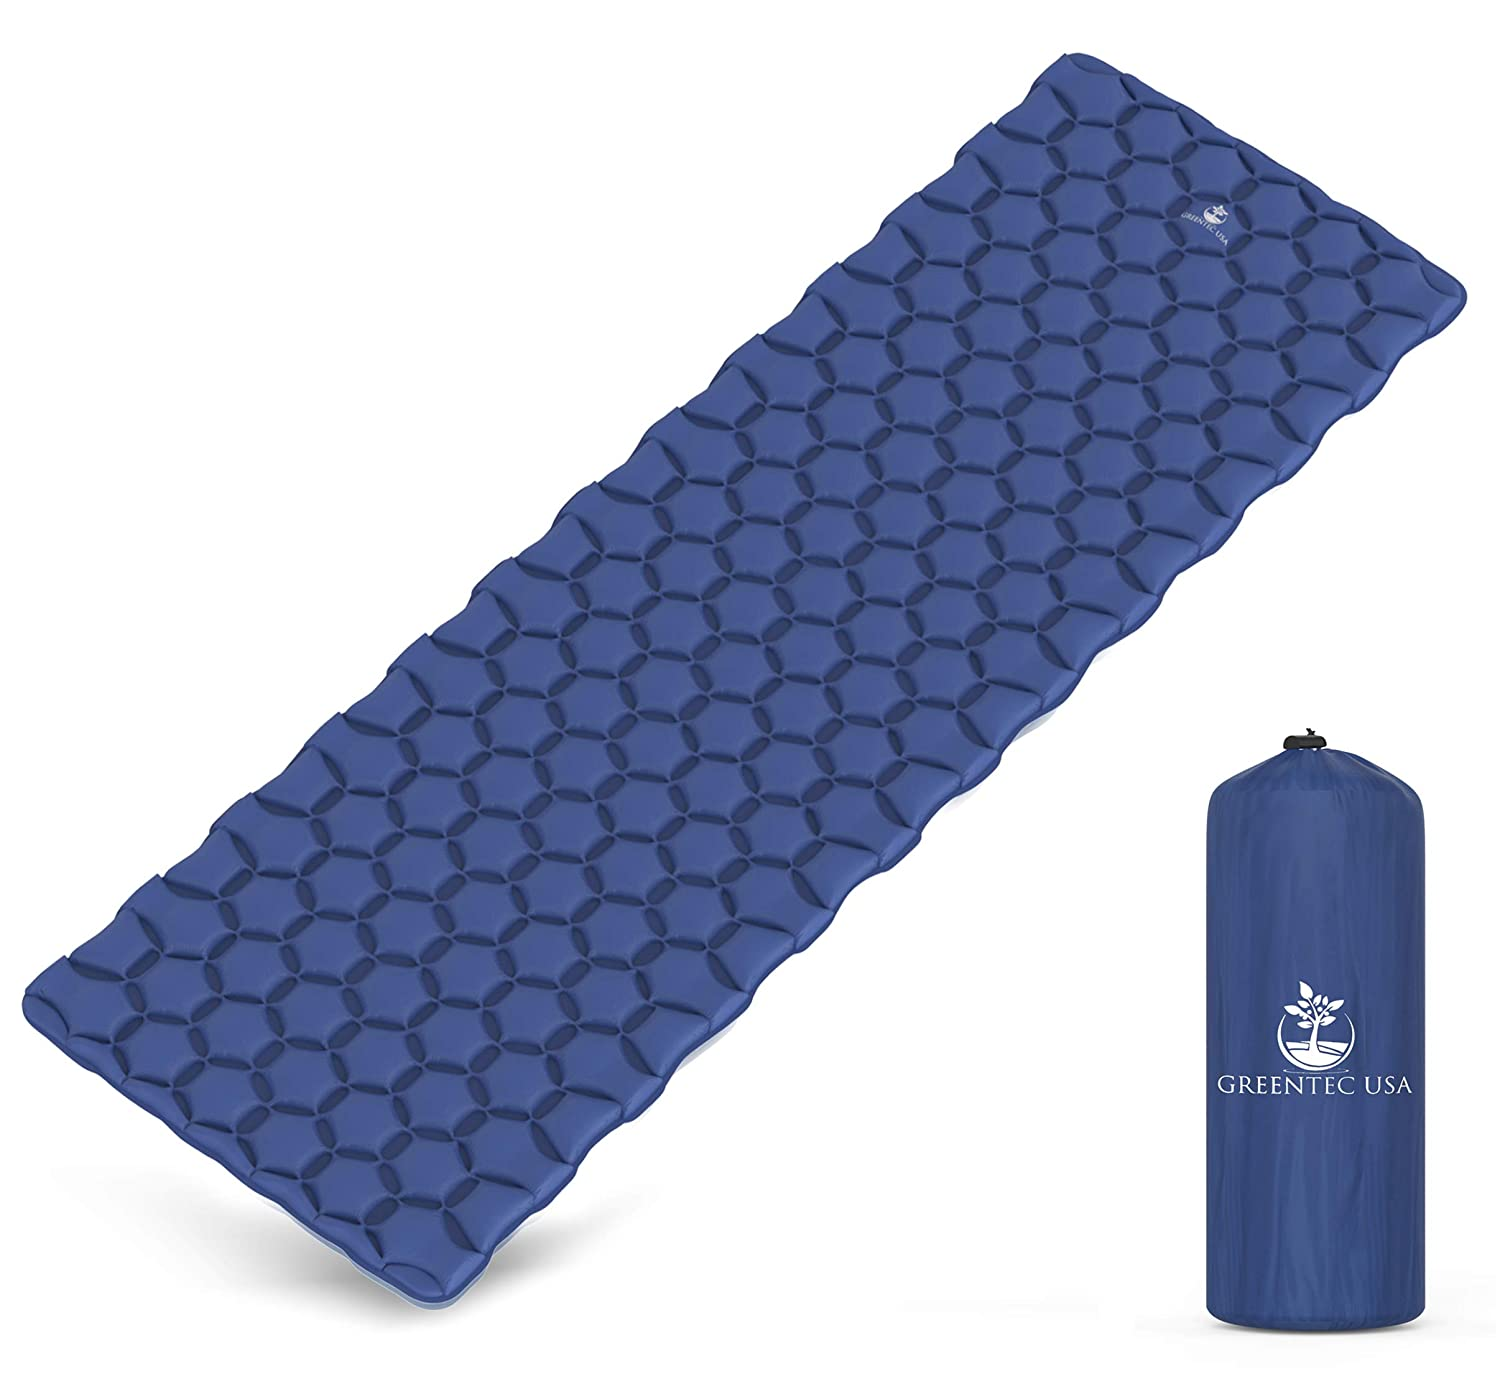 GREENTEC USA Premium Self-Inflating Sleeping Pad - Inflatable Foam Sleeping  Mat for Camping, Hiking, and Traveling - Lightweight, Compact, and Durable